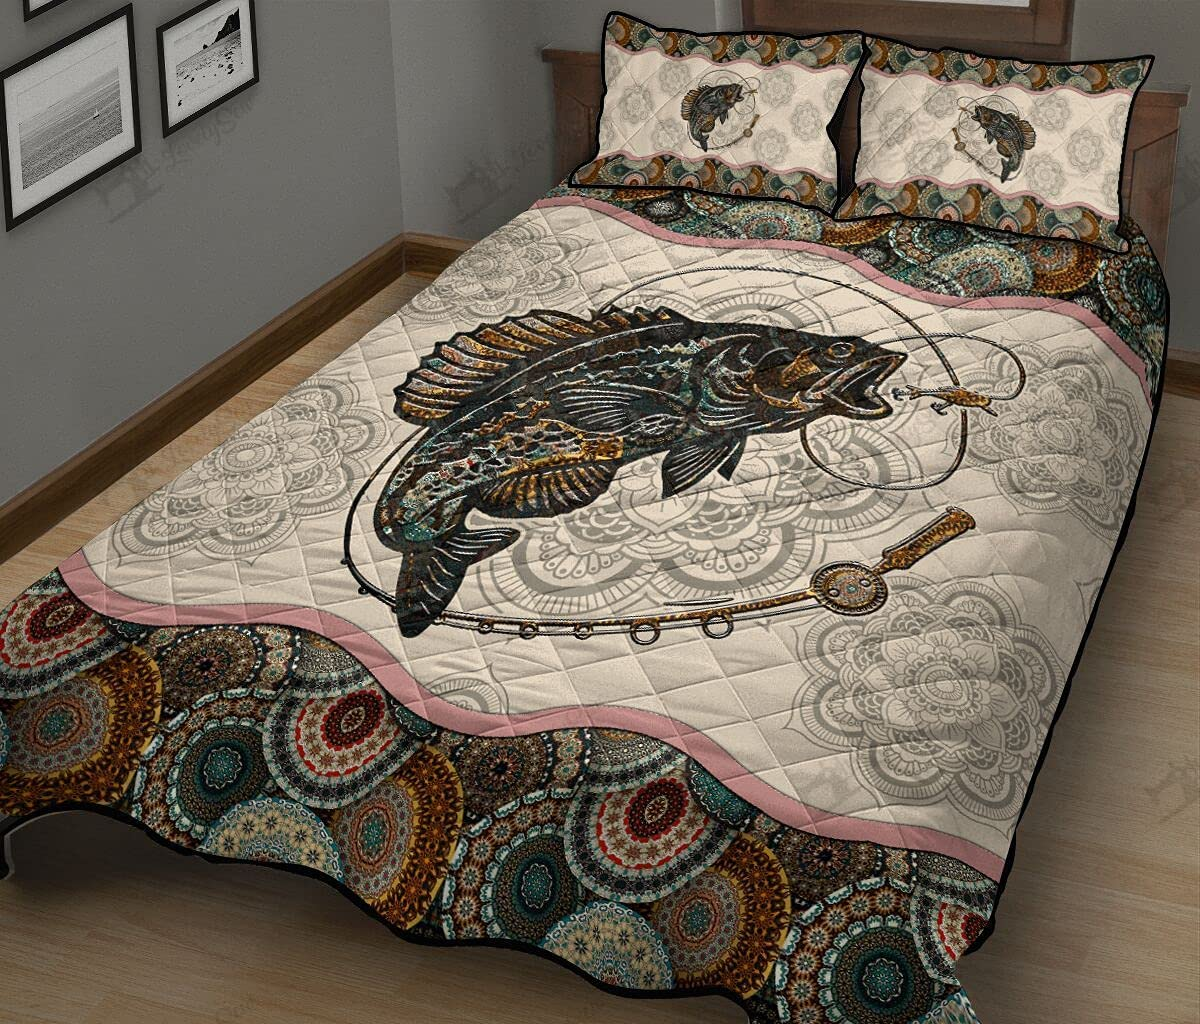 Crappie Mandala Bedding New York Mall Set 3 unisex Pillowcase with Pieces Cover Quilt